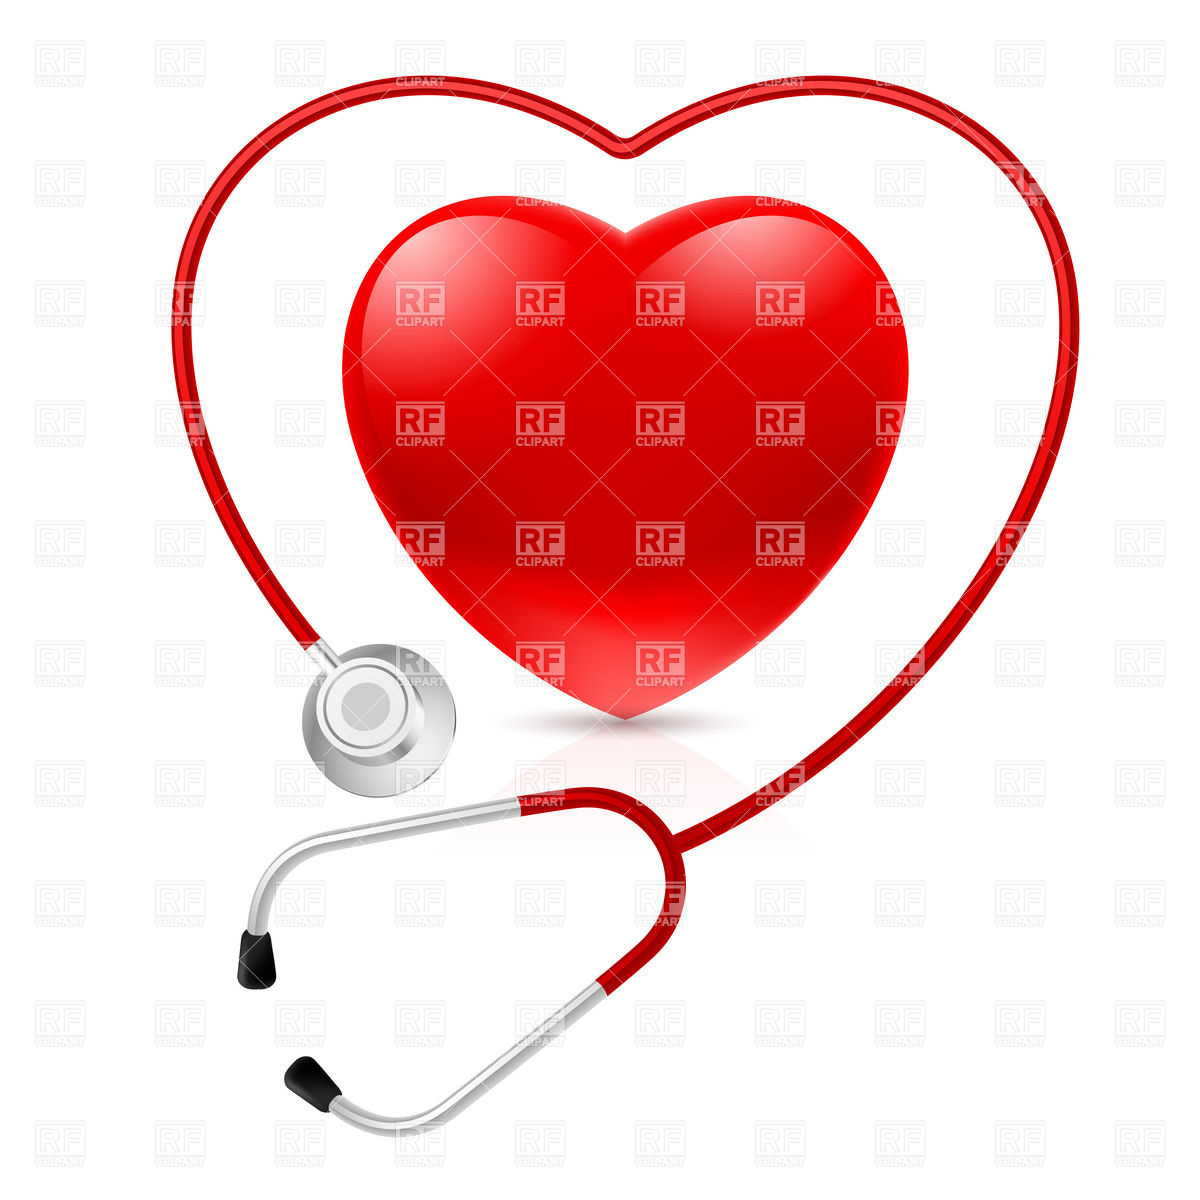 Heart Shaped Stethoscope Clip Art